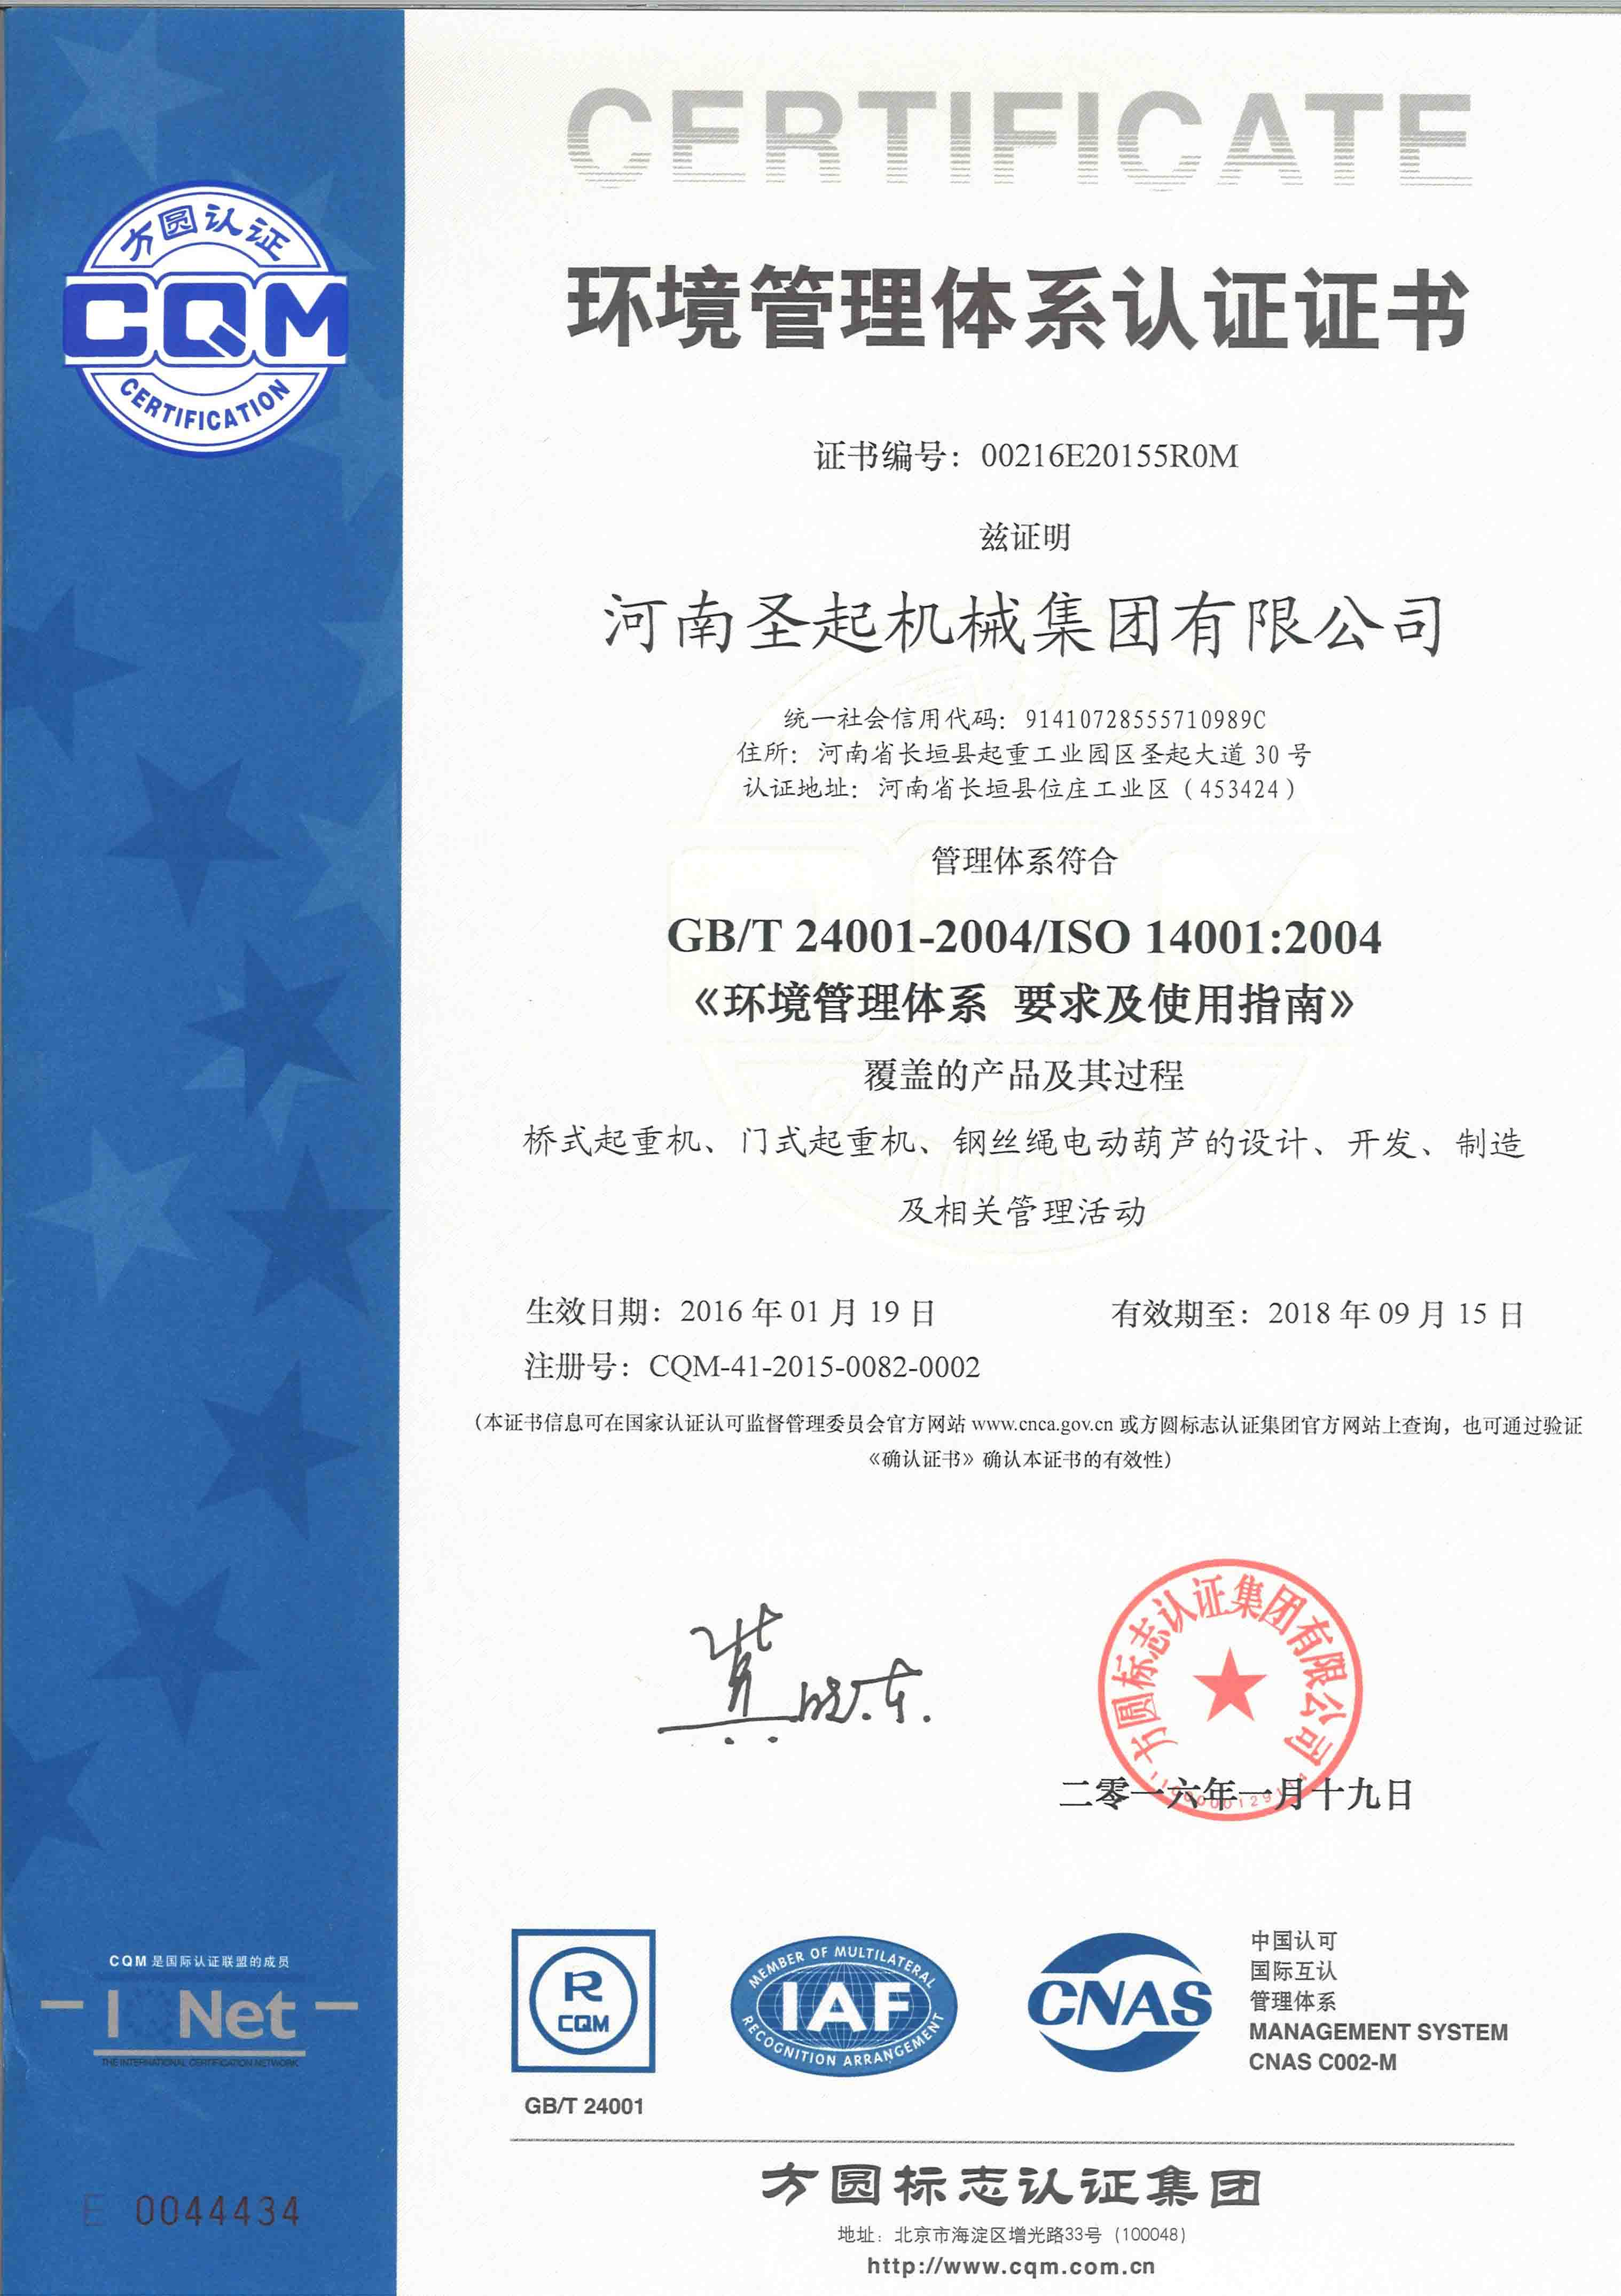 Environment Management Quality Certificate